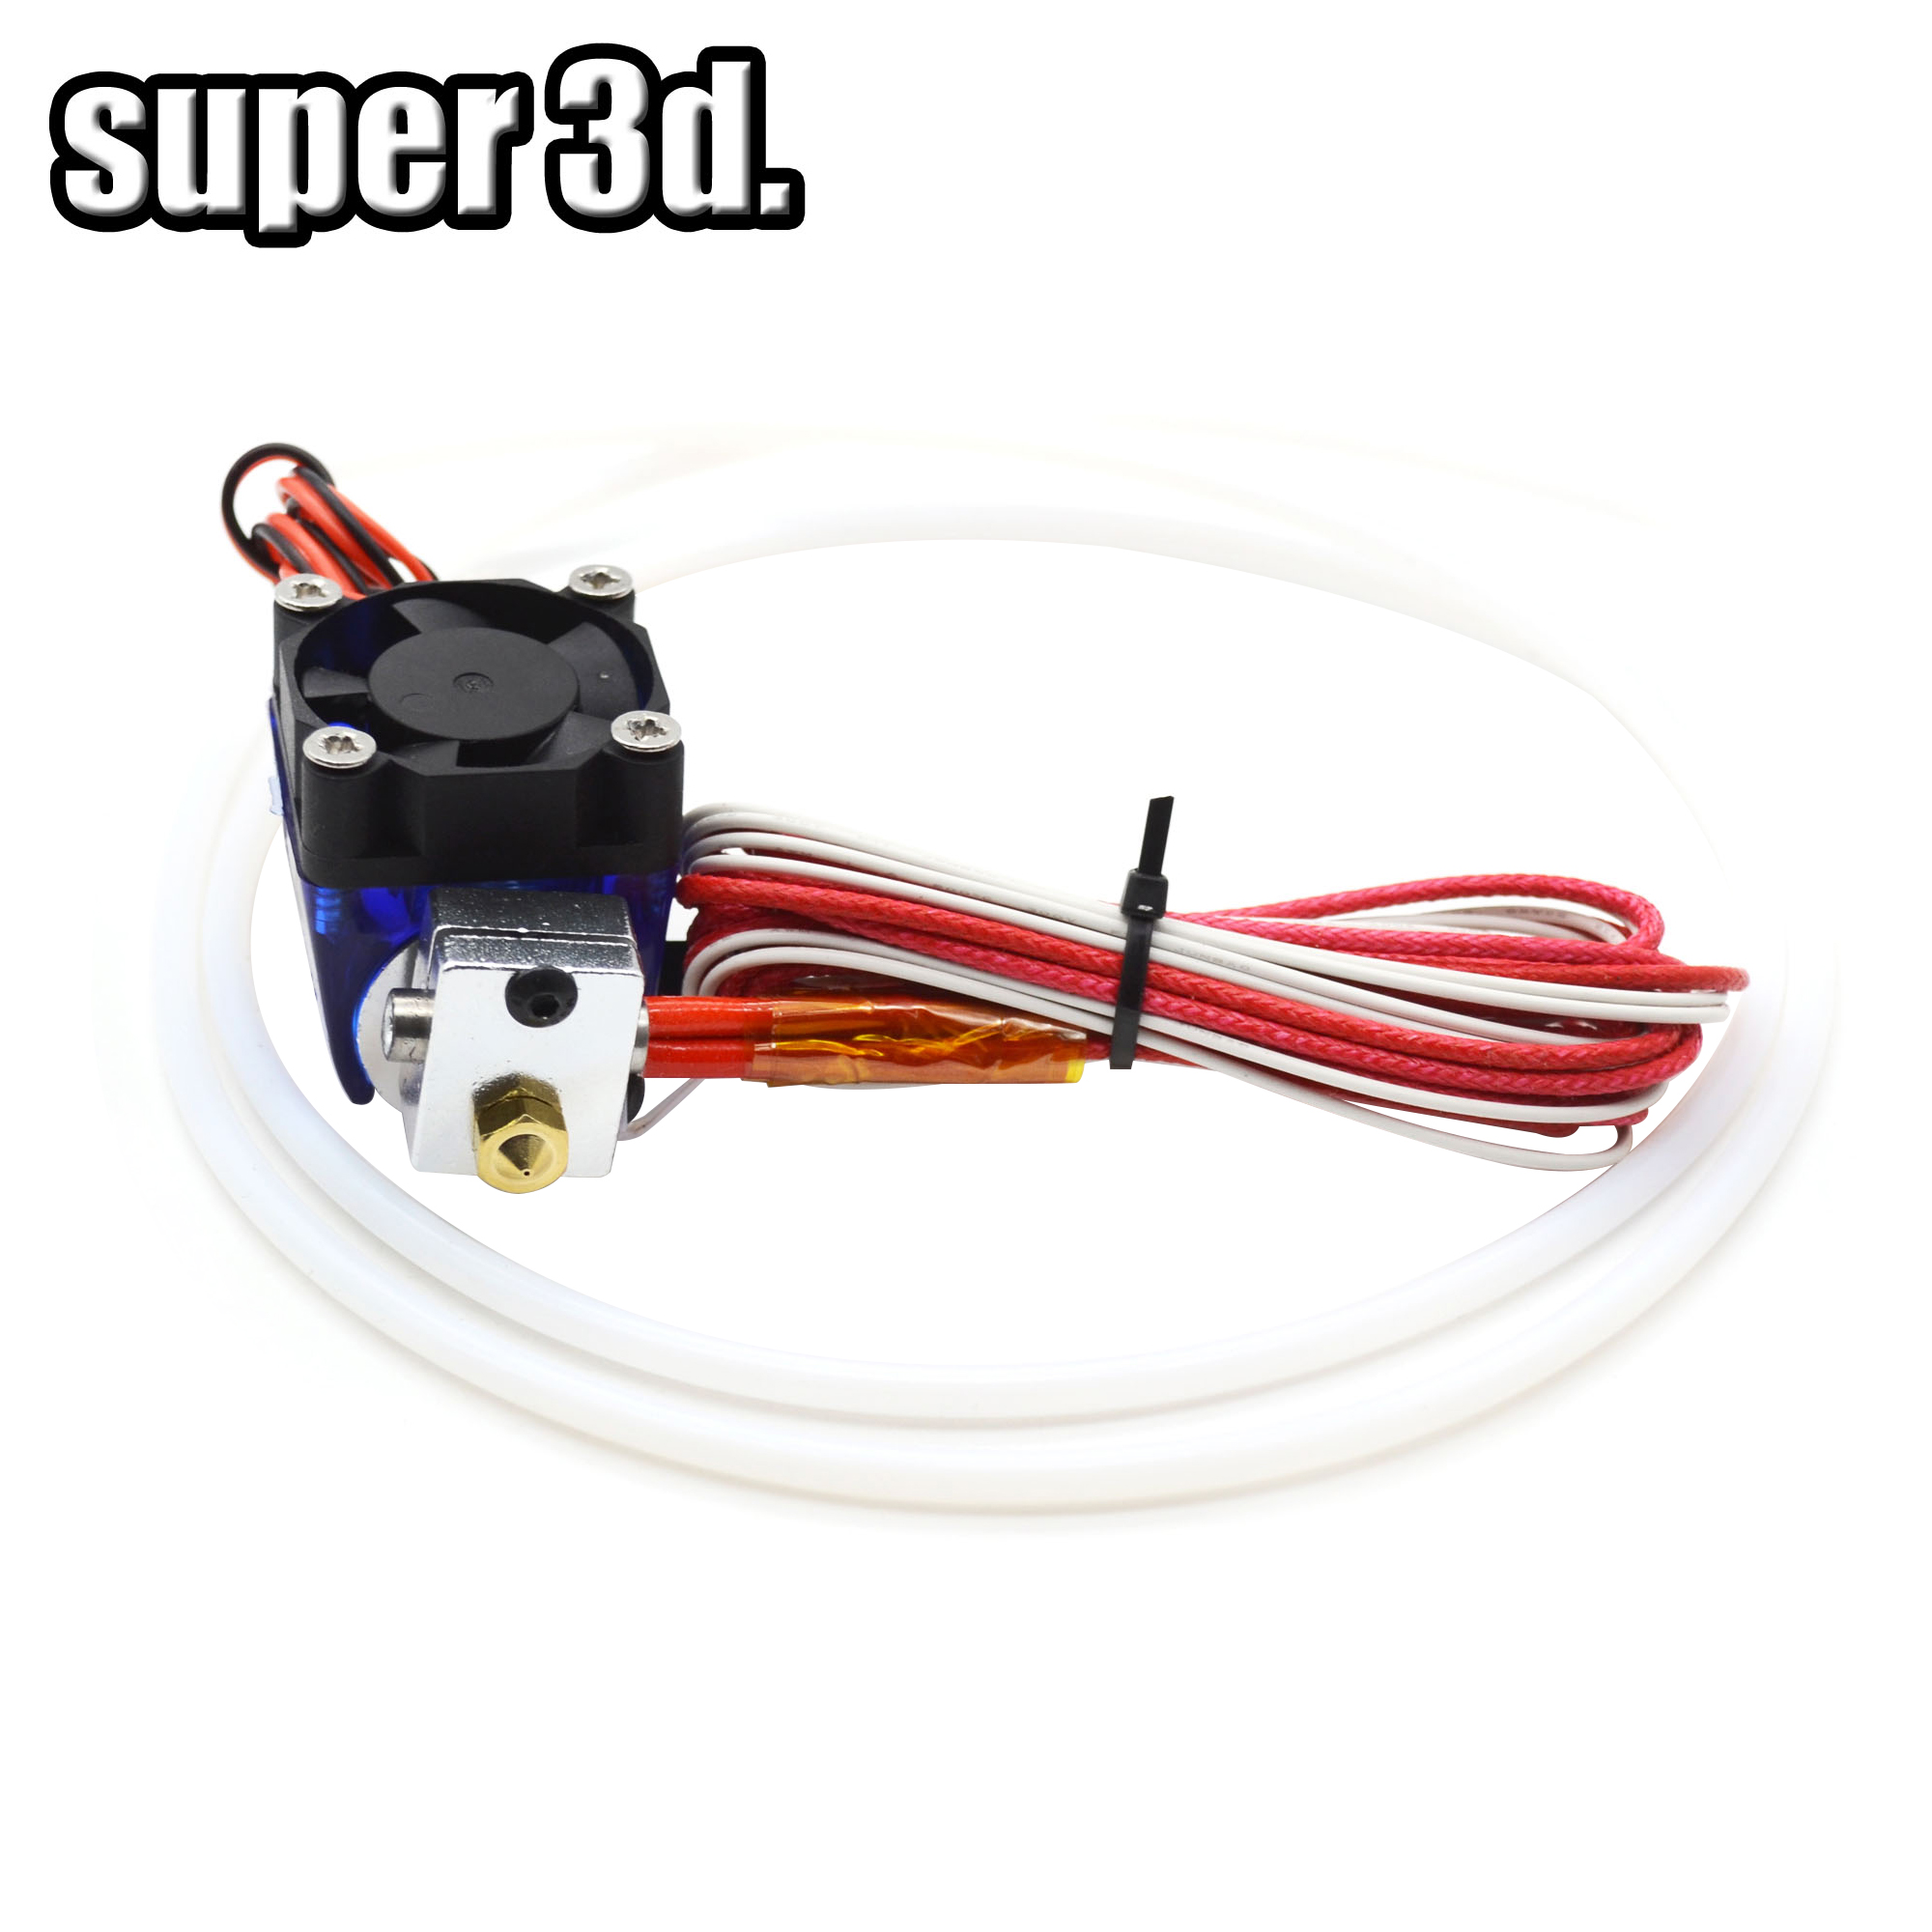 3D Printer V6 12V/24V Remote Bowden Print J-head Hotend Extruder 1meter Teflon Tube And Cooling Fan Bracket For 1.75mm E3d